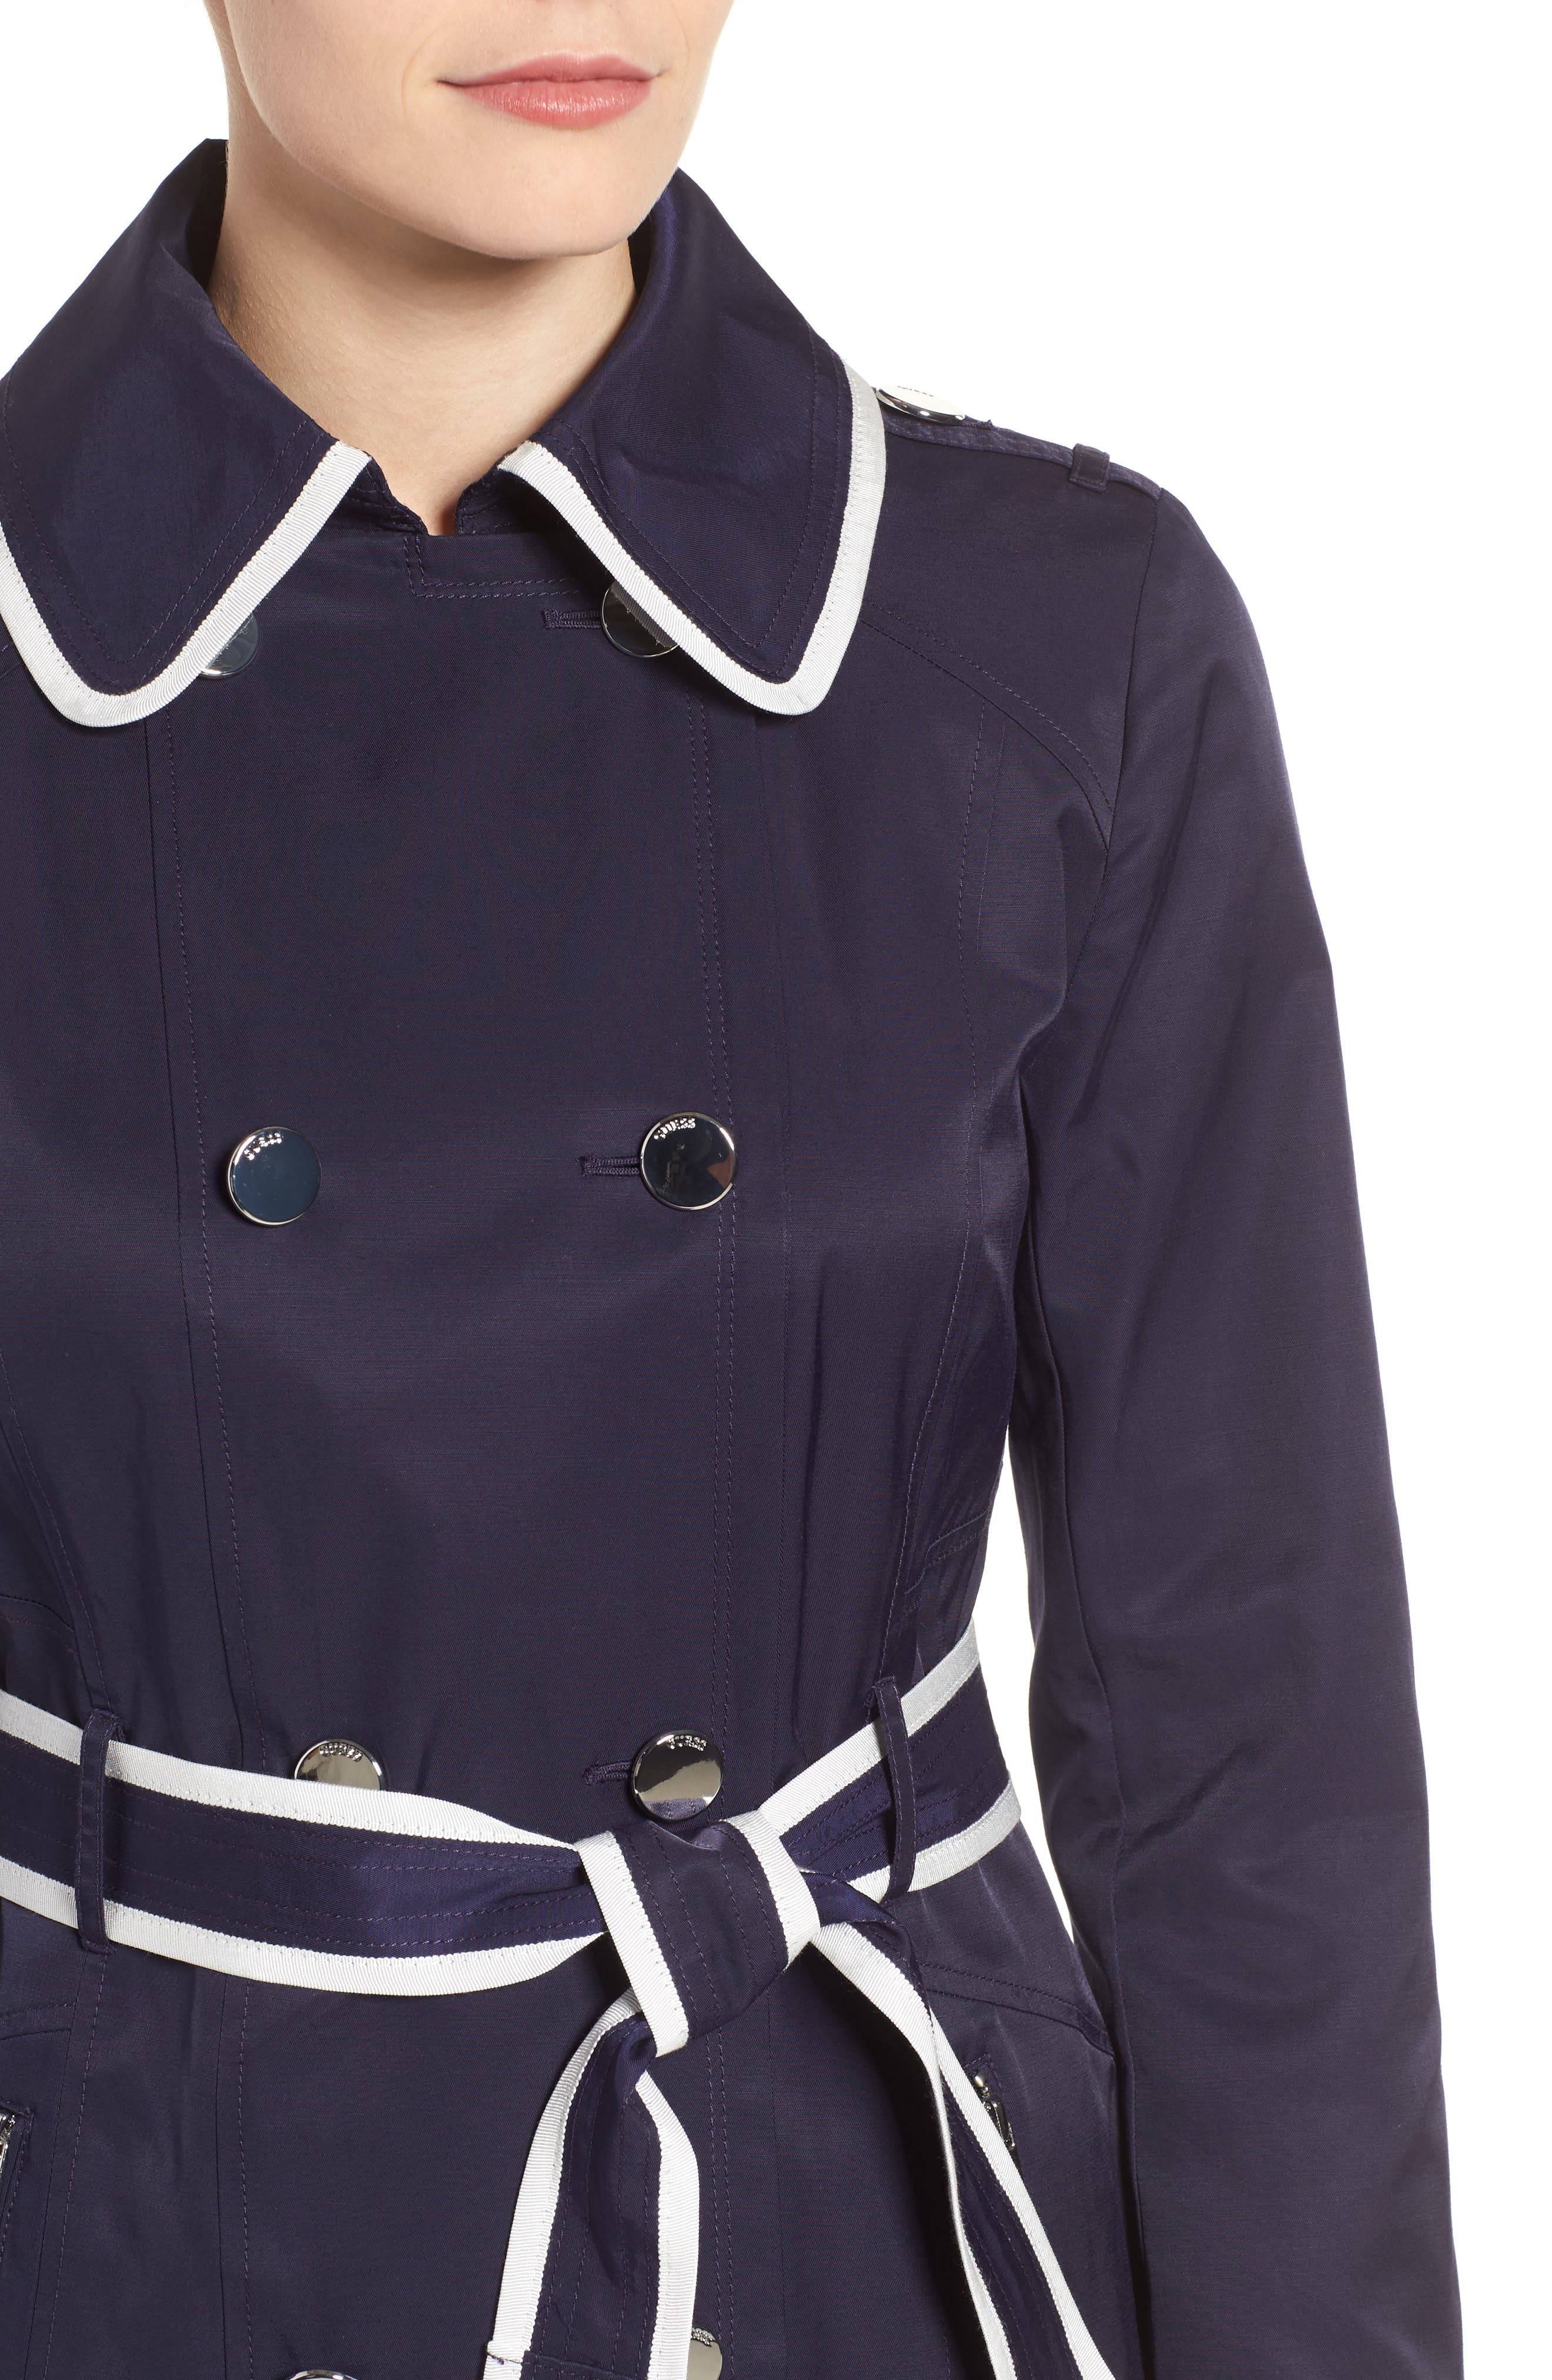 Piped Trench Coat,                             Alternate thumbnail 4, color,                             410